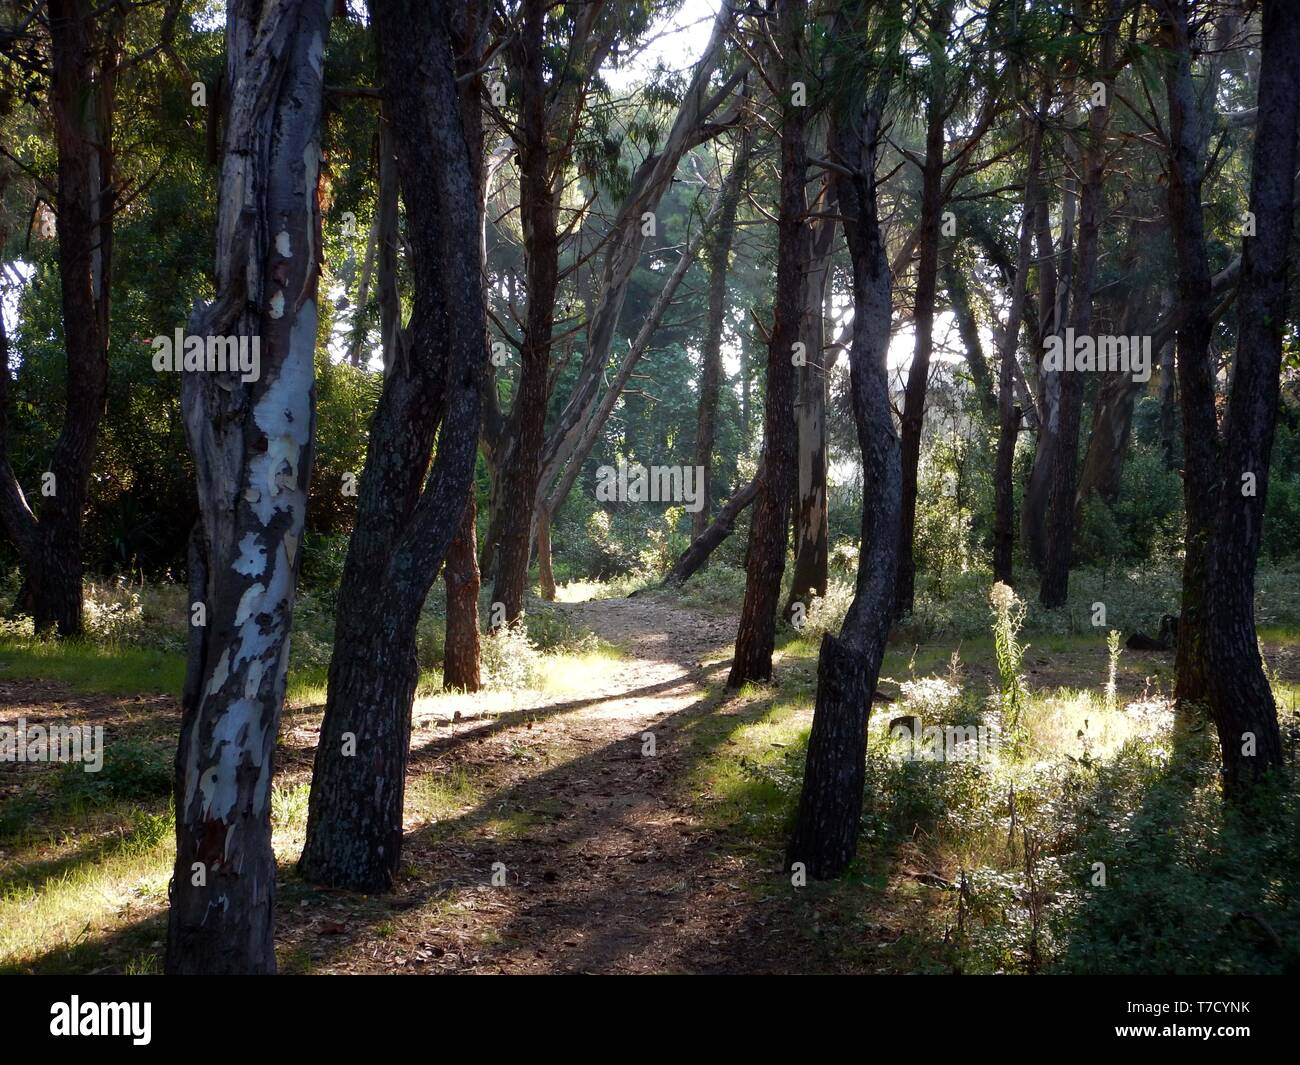 along the path in the marine pine forest - Stock Image